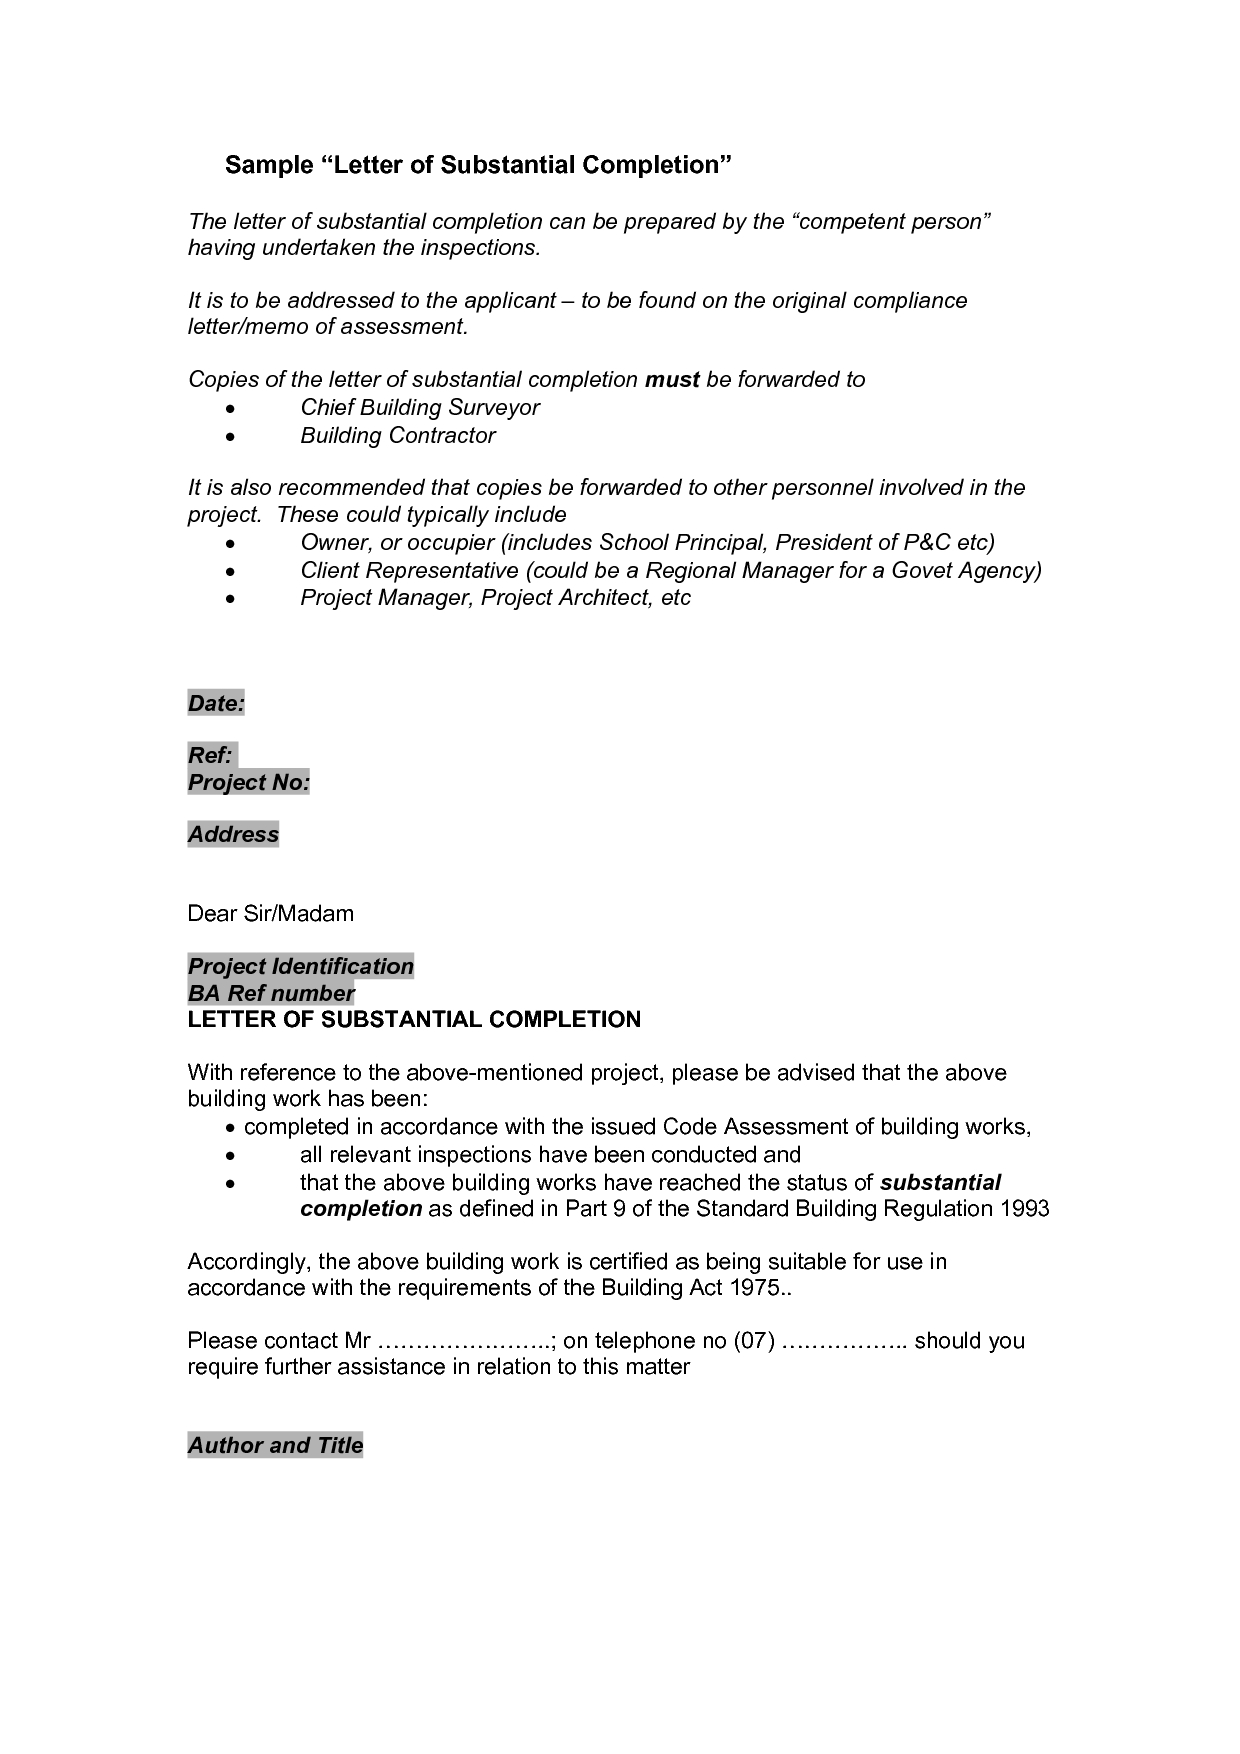 Certification Certificate Completion Construction Letter in Certificate Of Completion Construction Templates